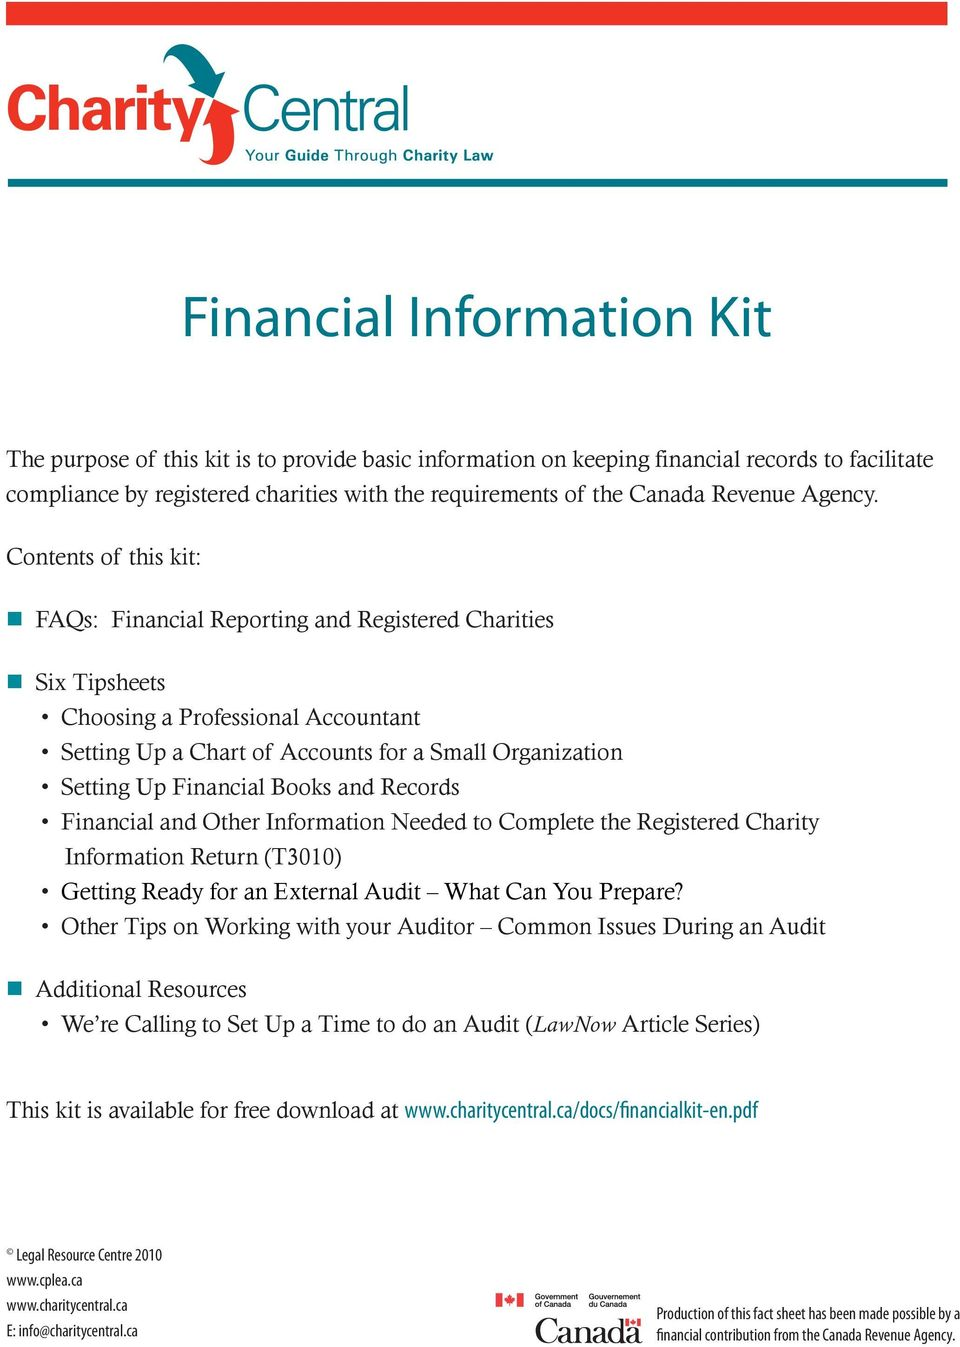 Contents of this kit: FAQs: Financial Reporting and Registered Charities Six Tipsheets Choosing a Professional Accountant Setting Up a Chart of Accounts for a Small Organization Setting Up Financial